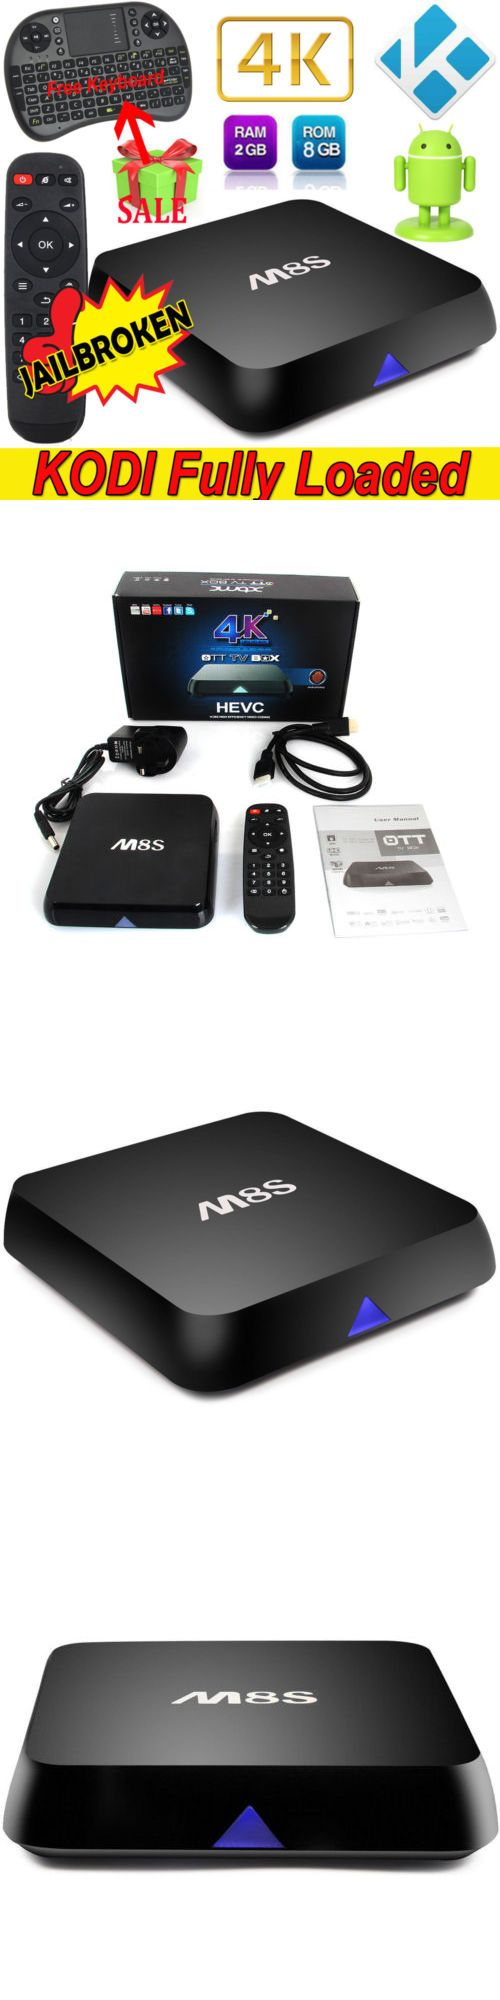 Cable TV Boxes: M8s 2G 8G 4K S812 Quad Core Android 4.4 Smart Tv Box Wifi Bt4.0+Free Keyboard -> BUY IT NOW ONLY: $58.58 on eBay!